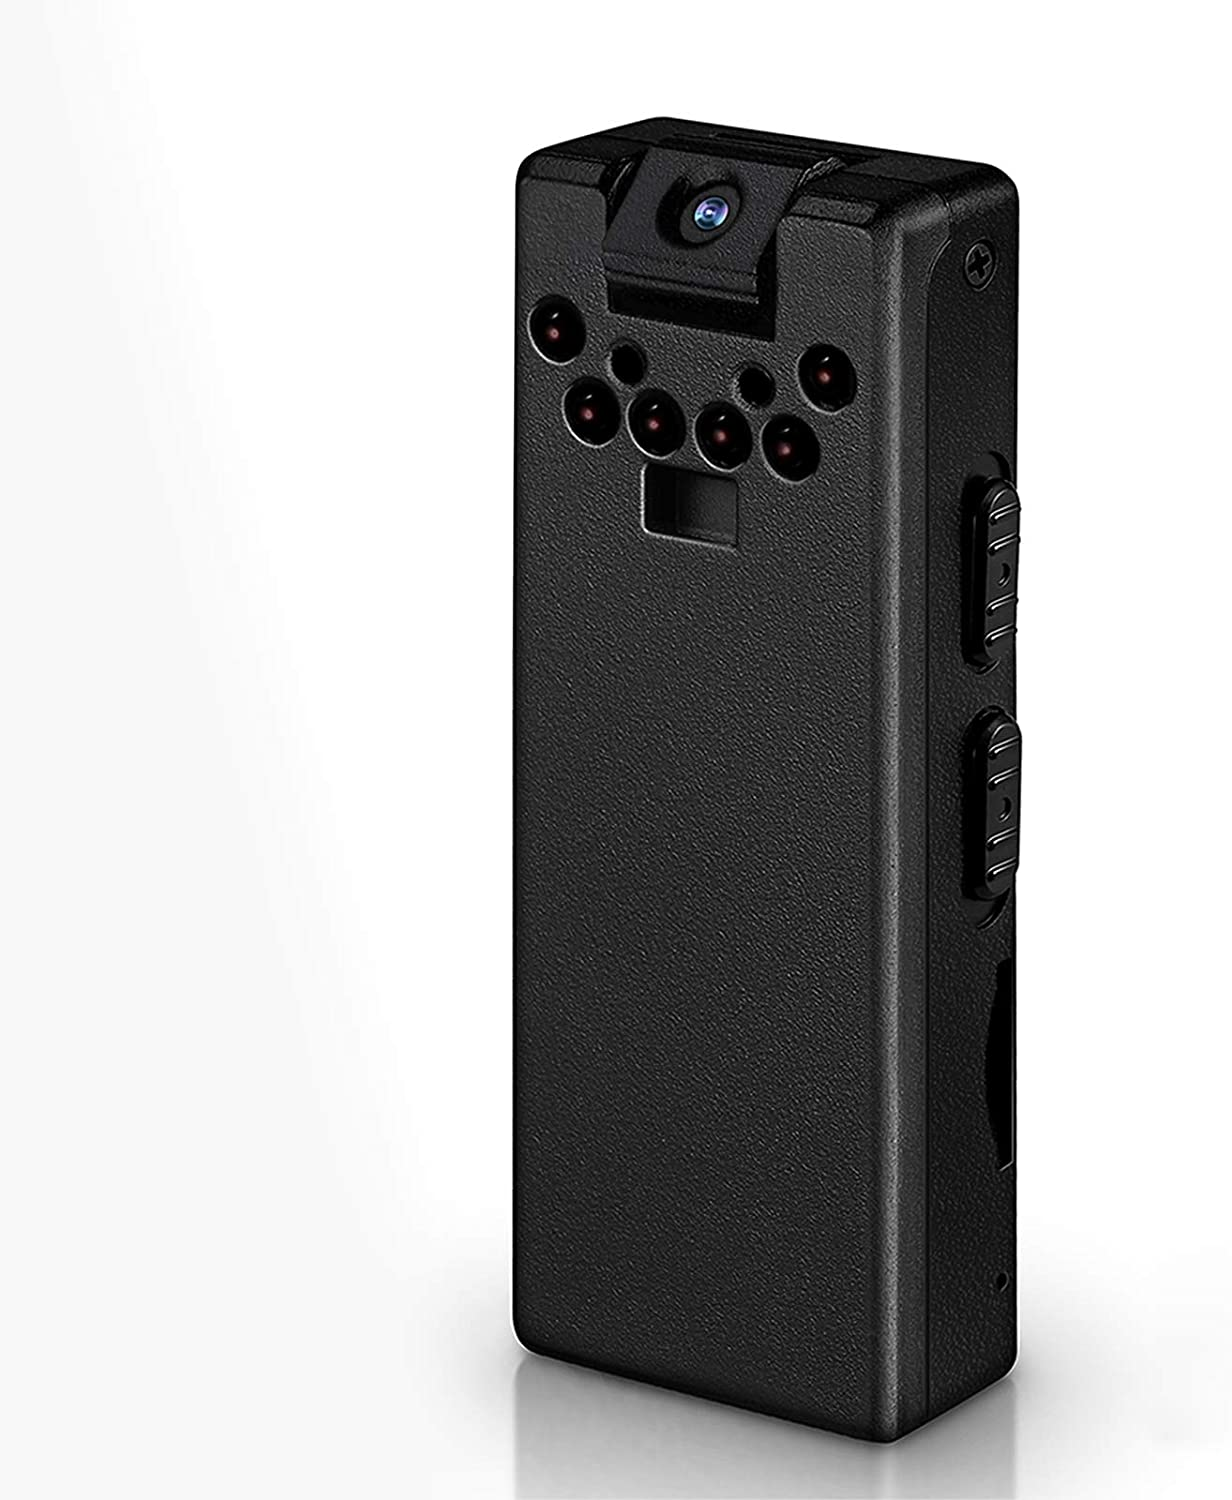 LZHZJOY Hidden Camera HD 1080p Spy Camera Mini Body Camera Video Recorder Portable Voice Recorder for Office-Lectures-Meetings- Classroom (32GB Card)